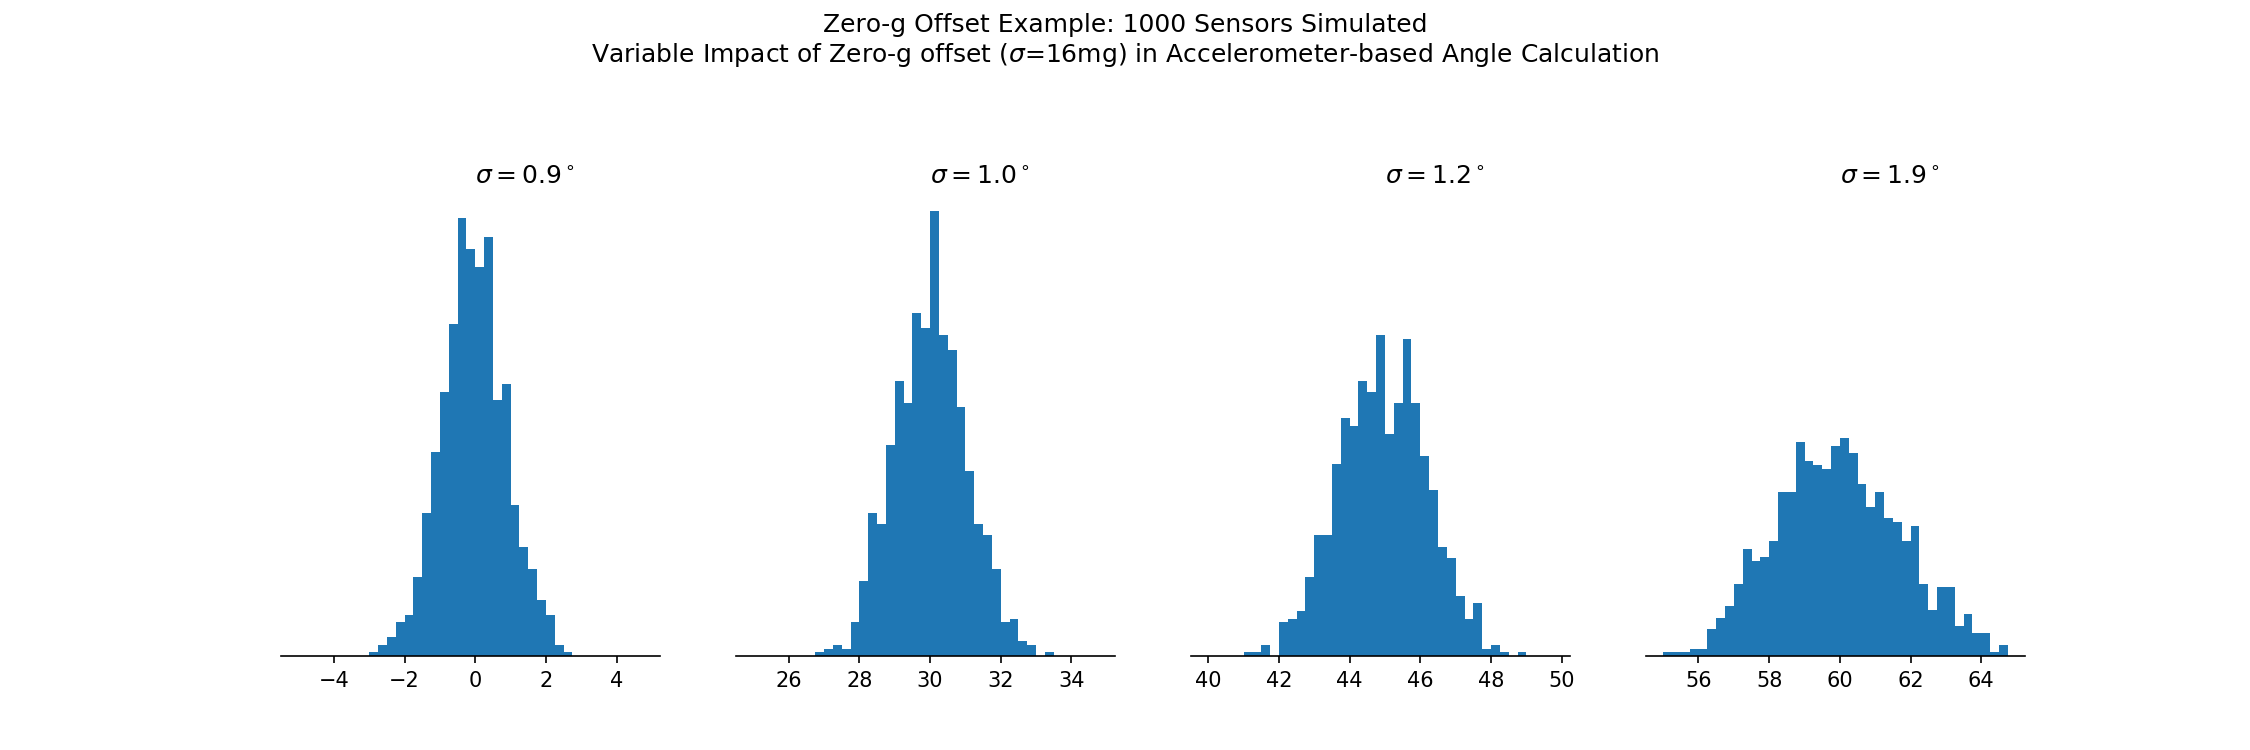 Example simulation visualizing the effect of accelerometer zero-g offset